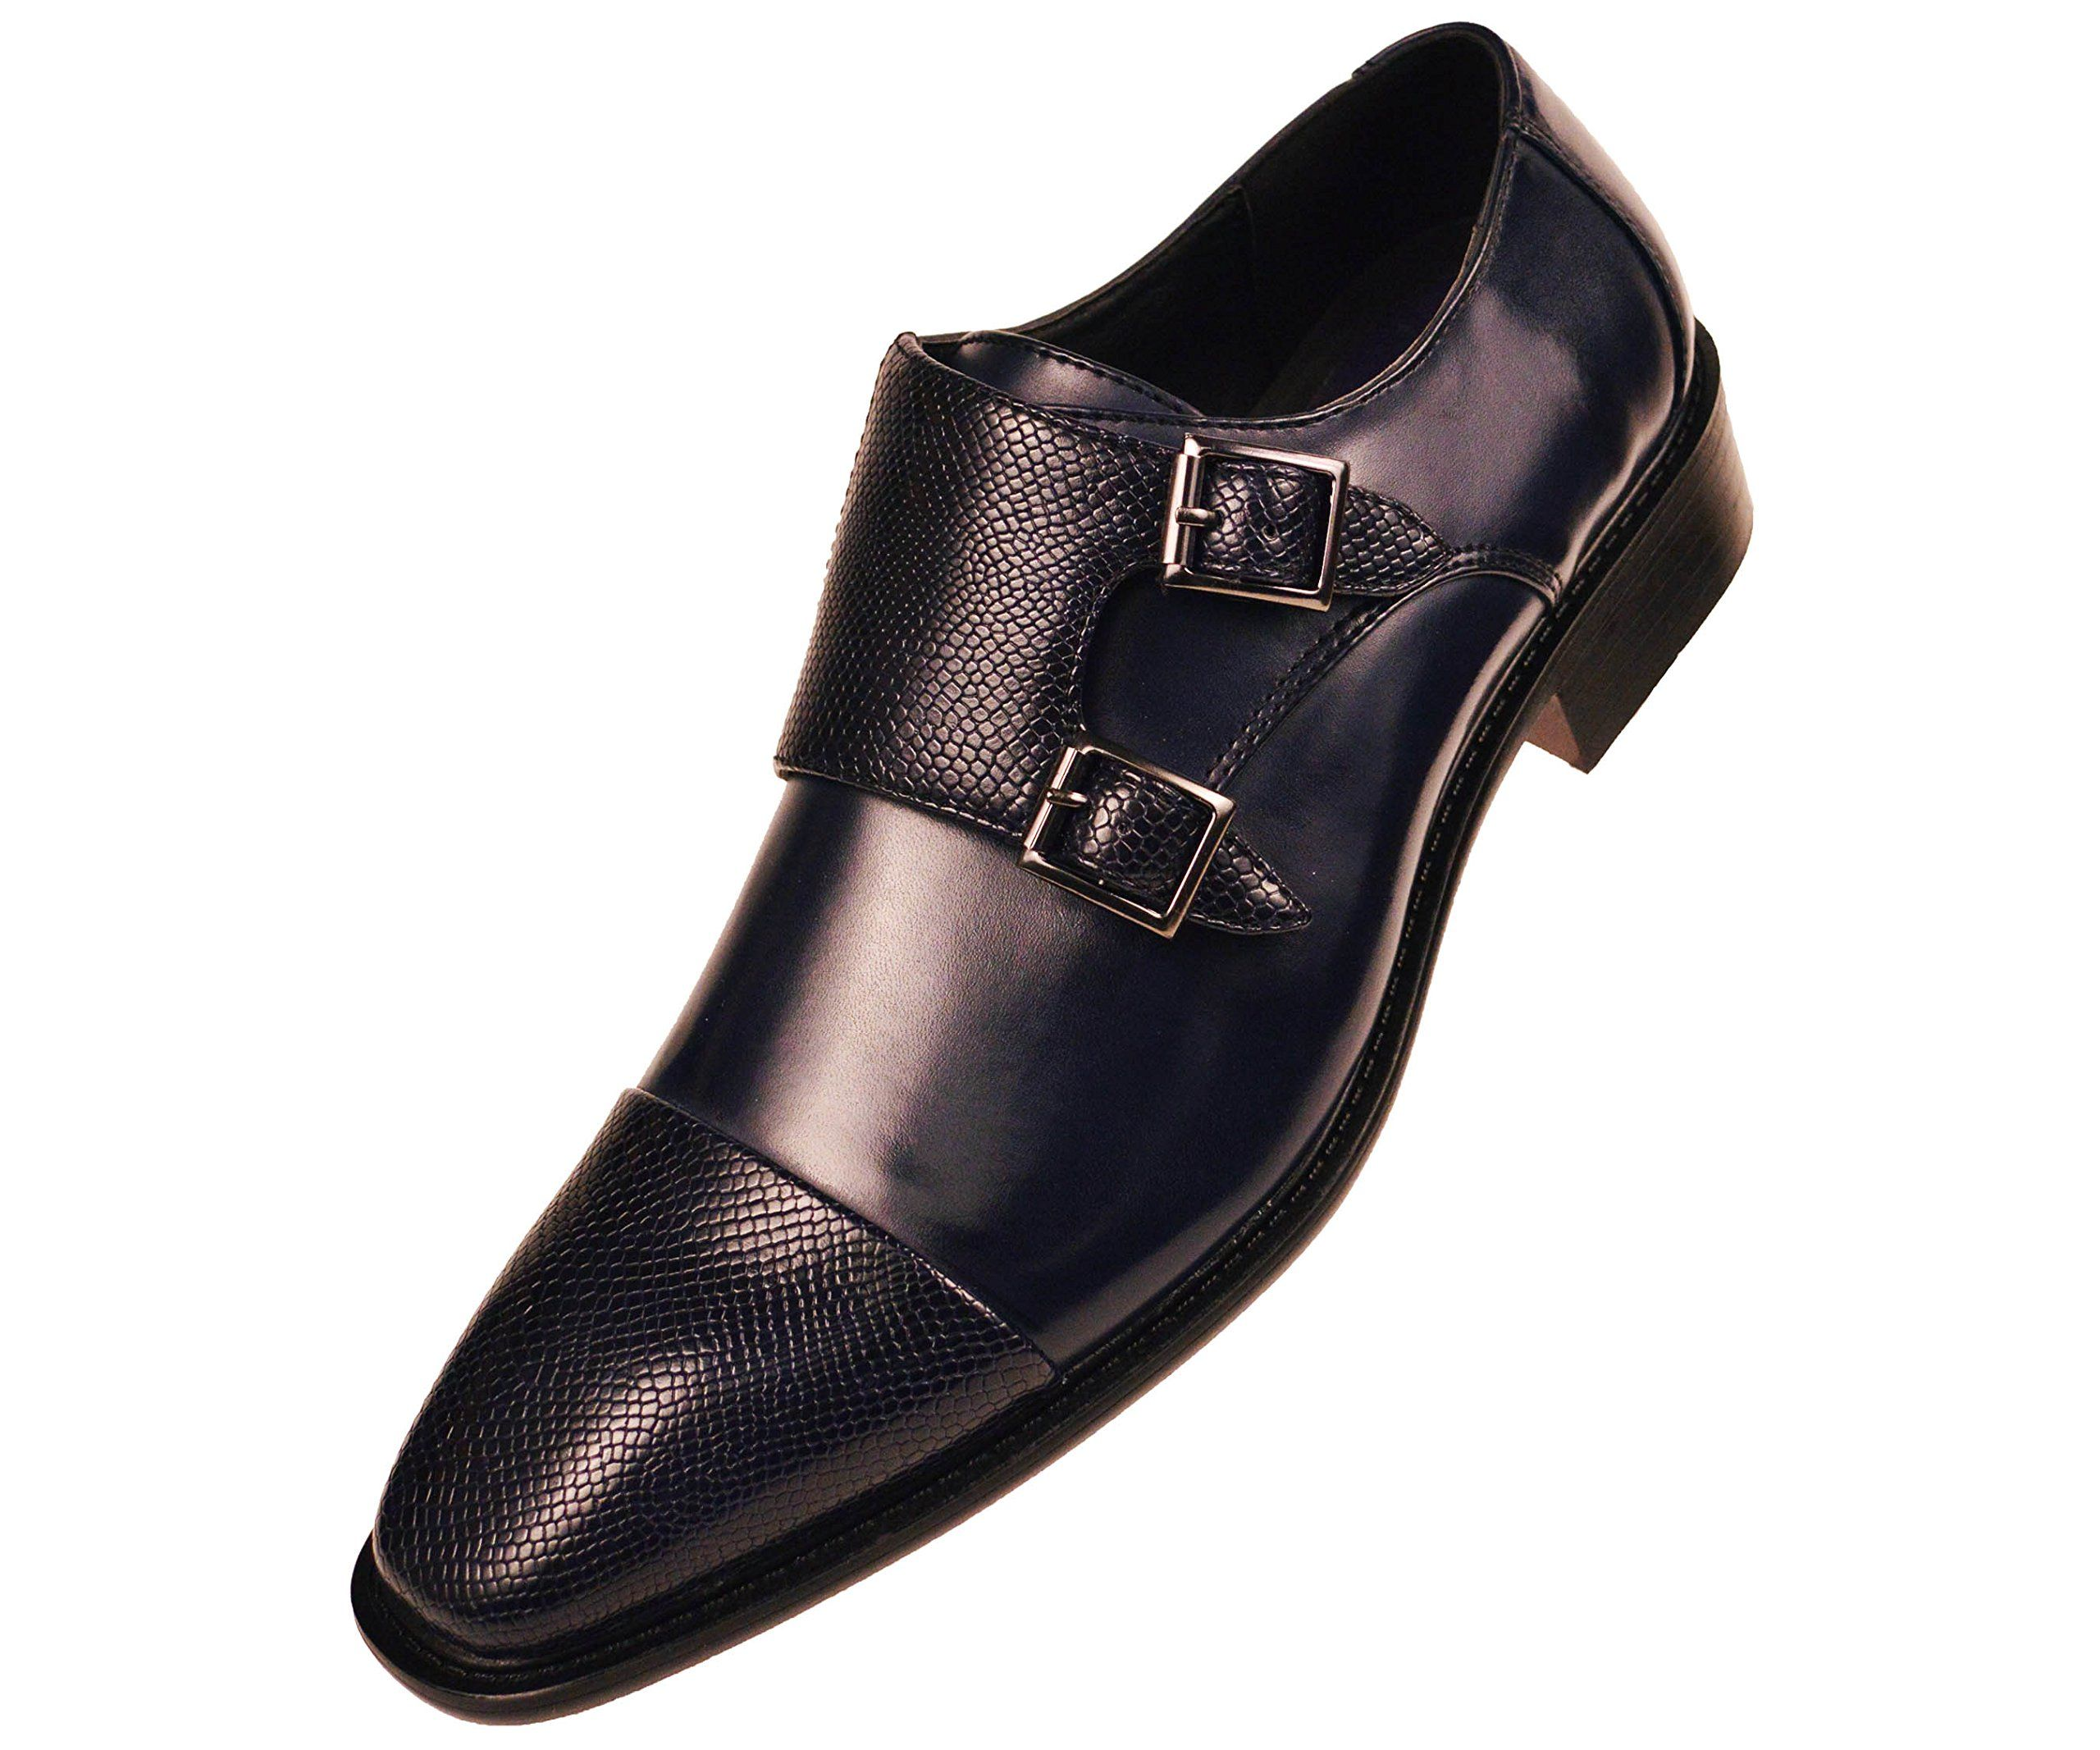 Bolano Mens Navy Blue Smooth Double Monk Strap Dress Shoe